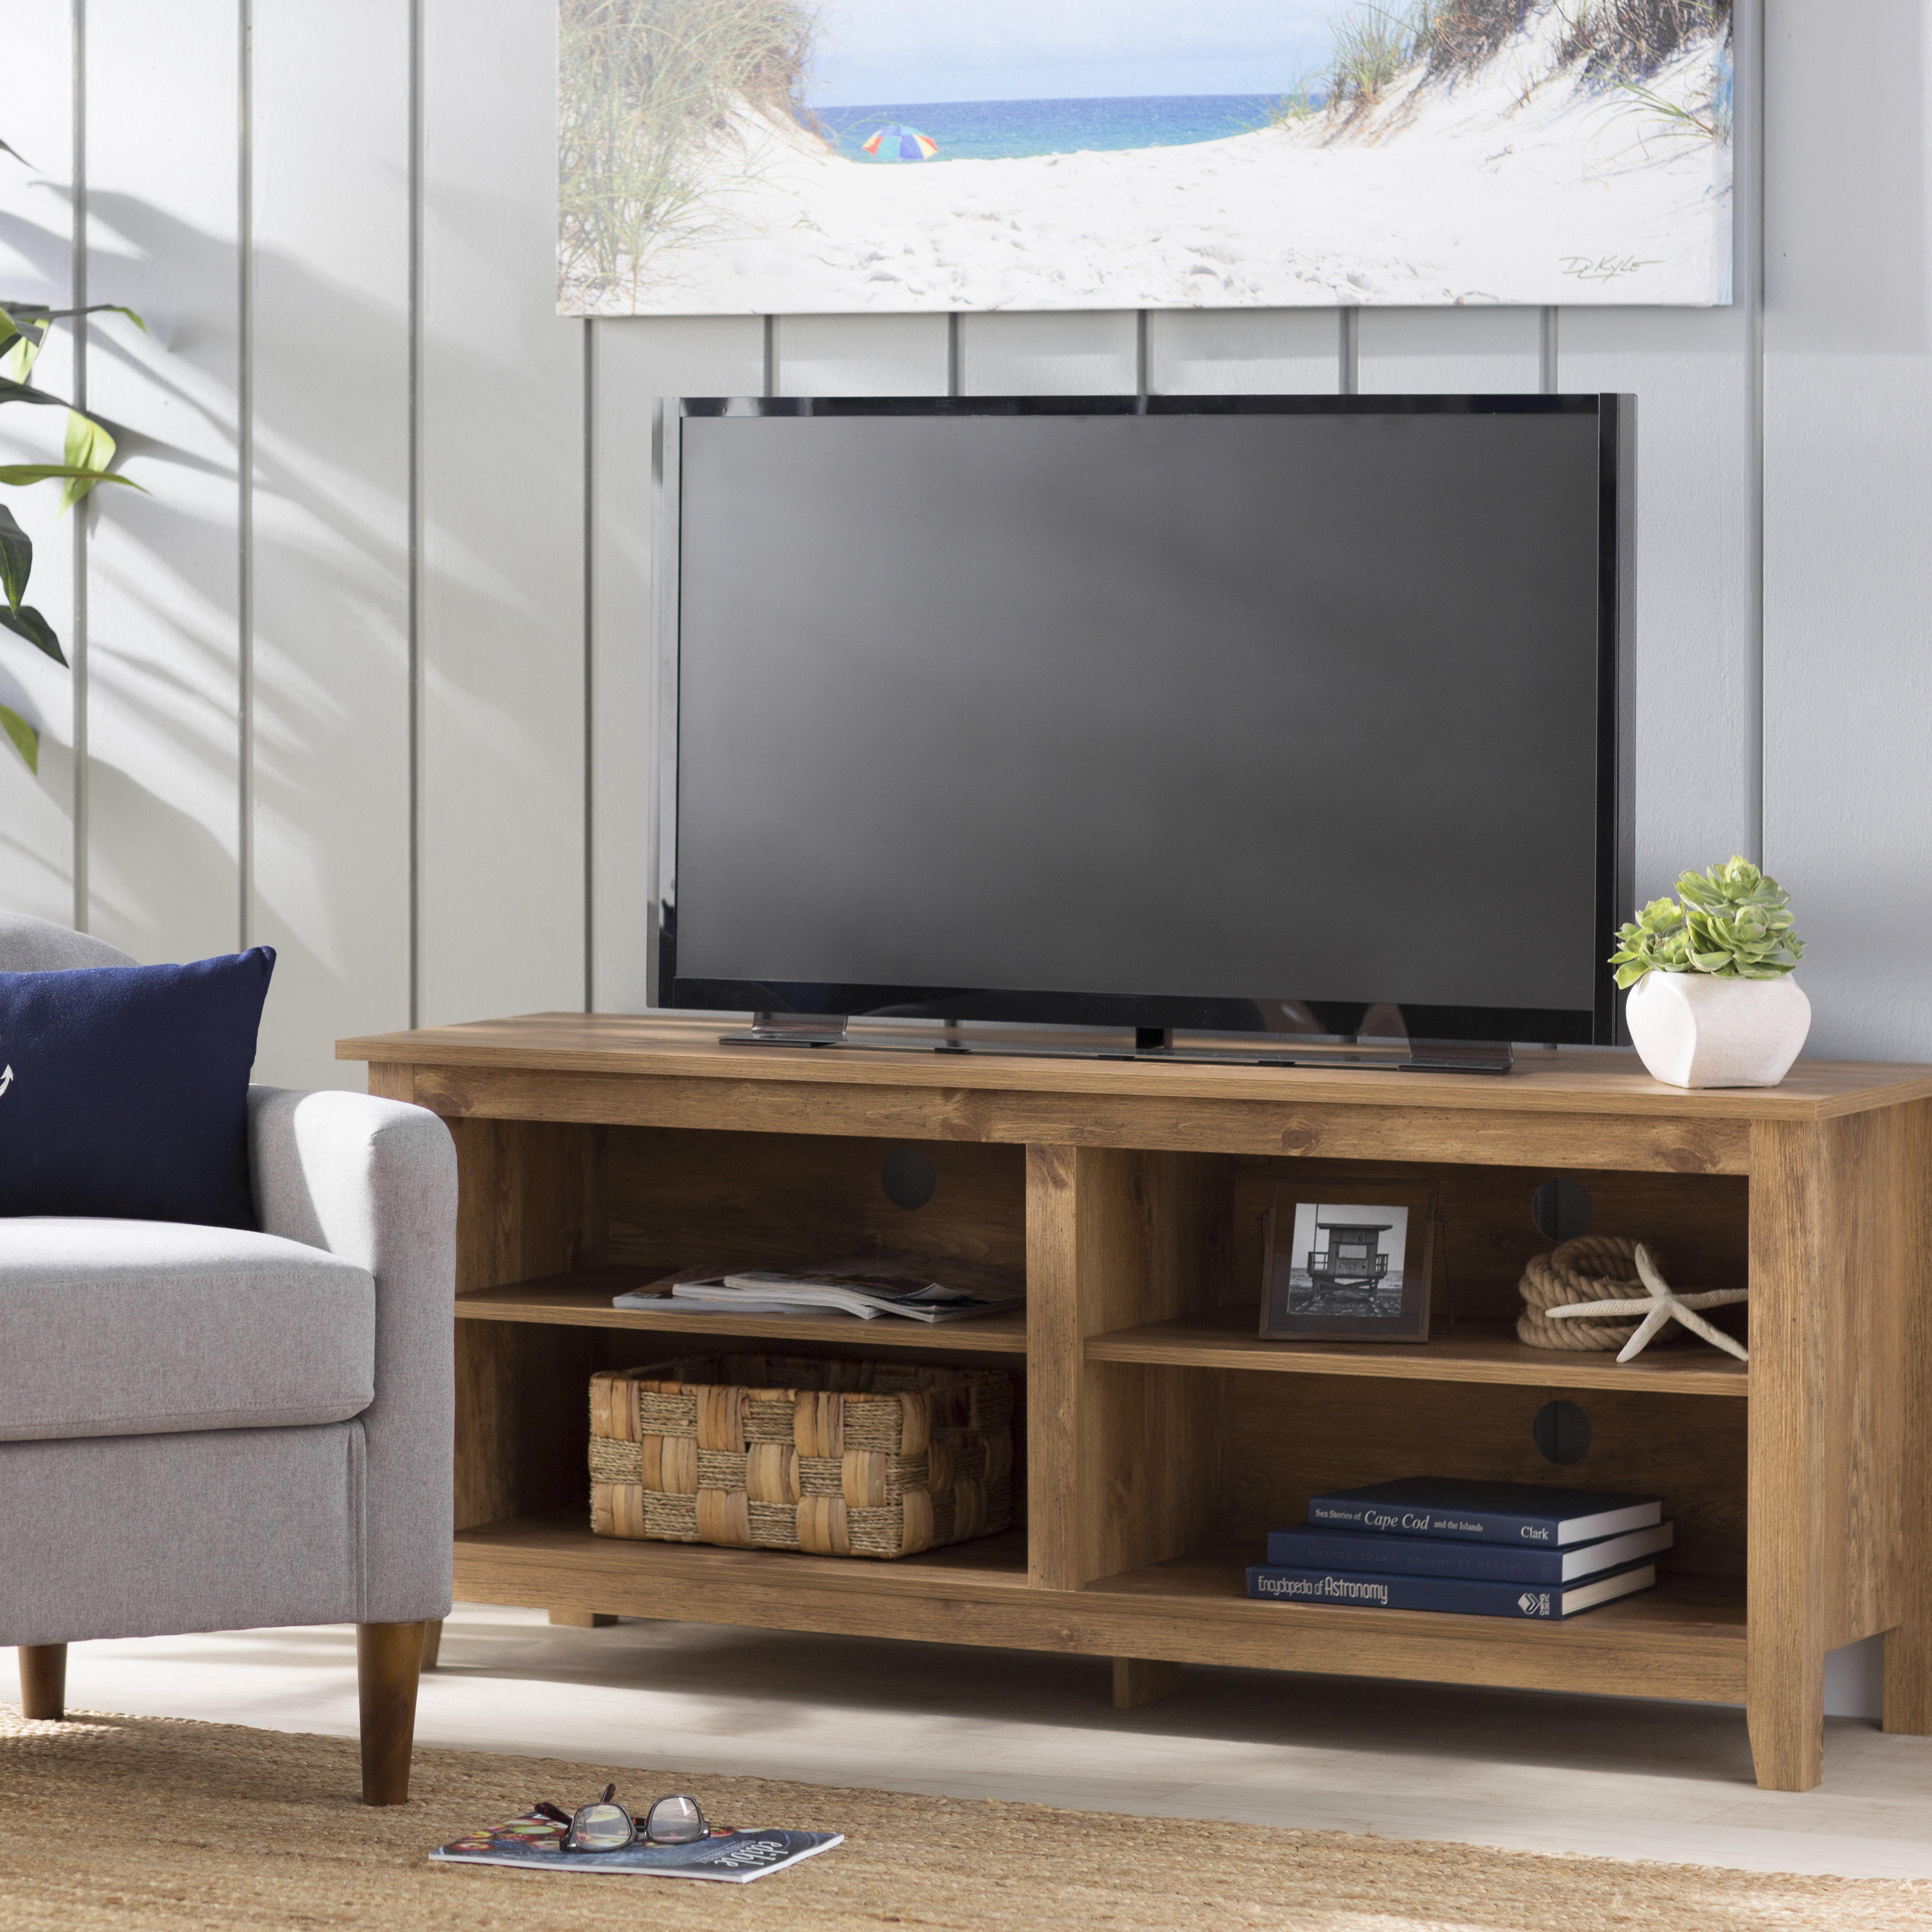 Tv Stands & Entertainment Centers You'll Love | Wayfair Throughout Sinclair Blue 54 Inch Tv Stands (View 20 of 30)